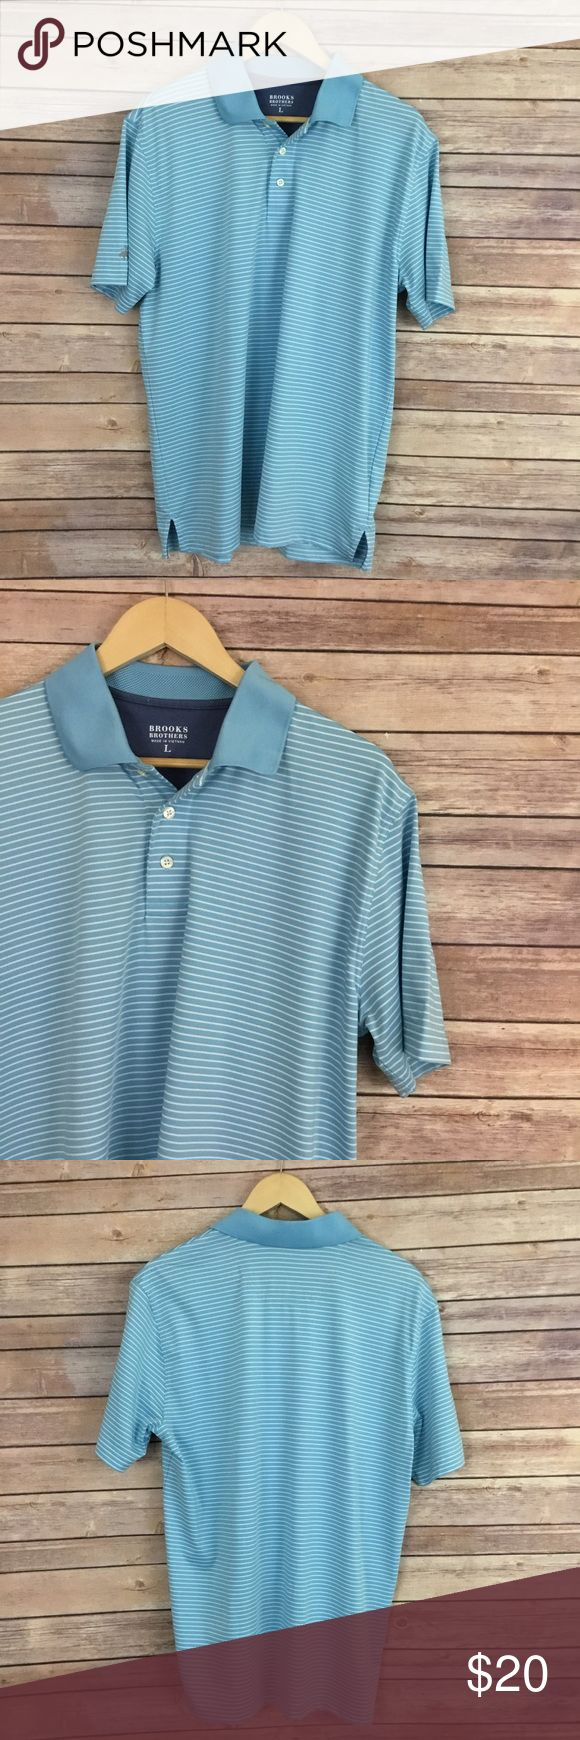 Brooks Brothers Striped Polo Brooks Brothers Striped Polo - short sleeve, blue and white stripes. Size L. In overall good condition with some flaws on the front, as pictured above. Brooks Brothers Shirts Polos